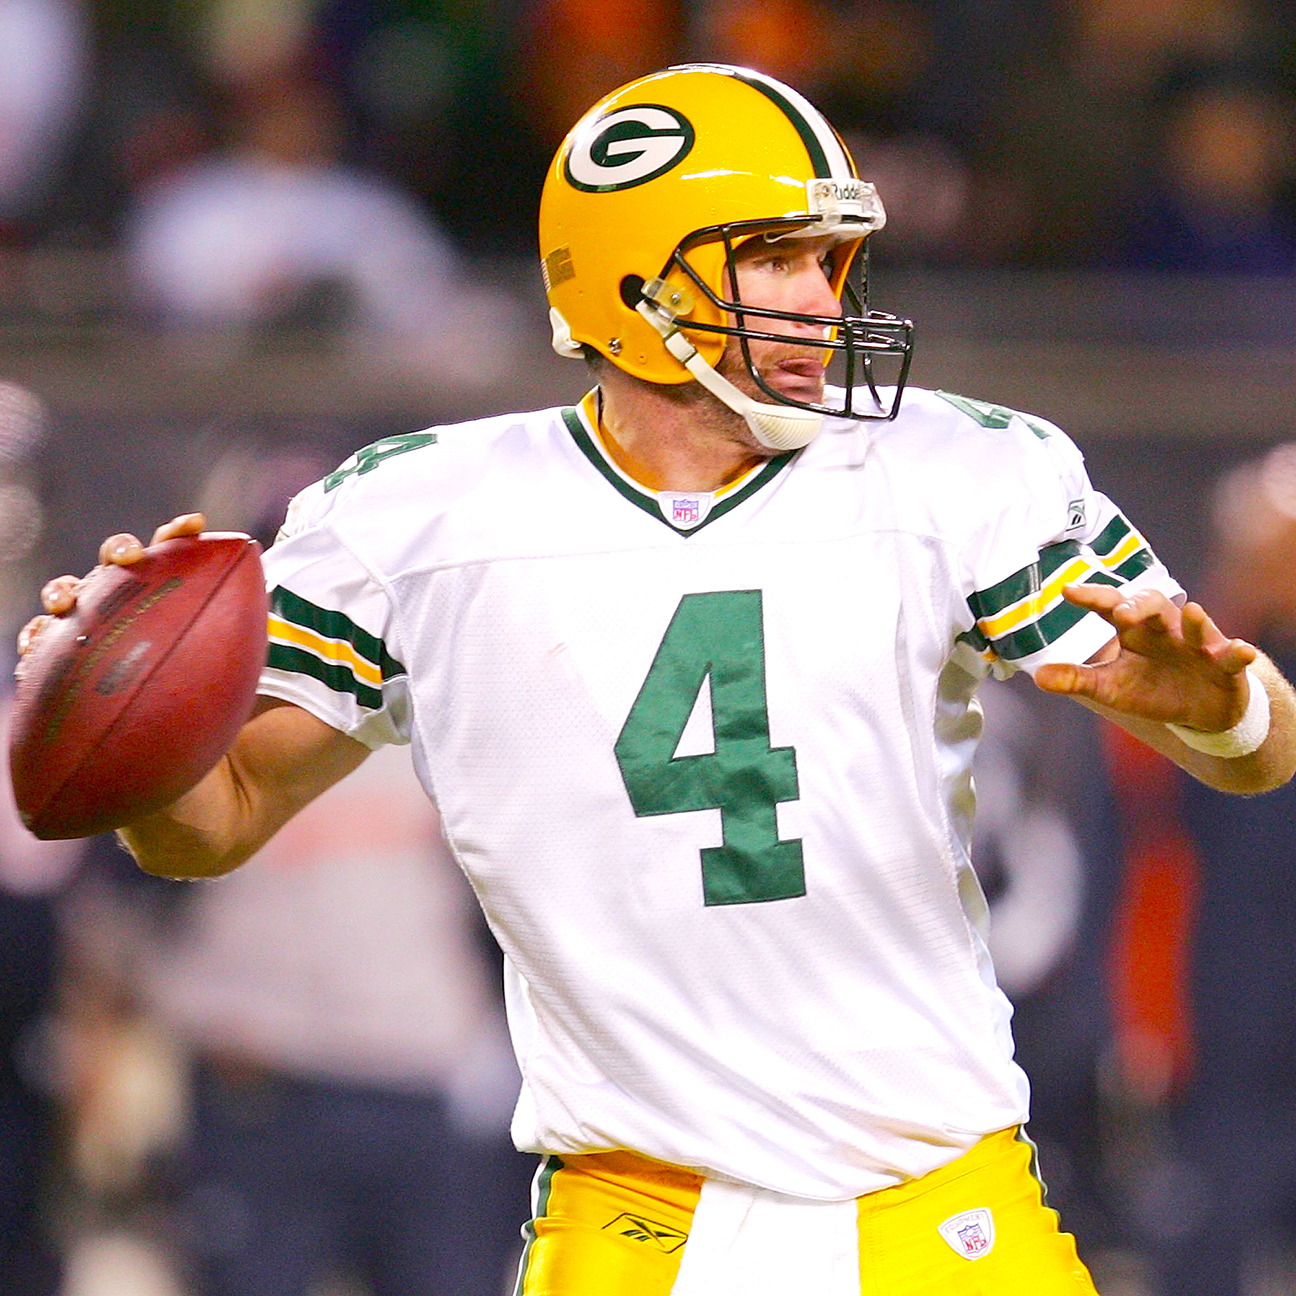 Favre reflects on Packers exit: 'Surreal feeling'